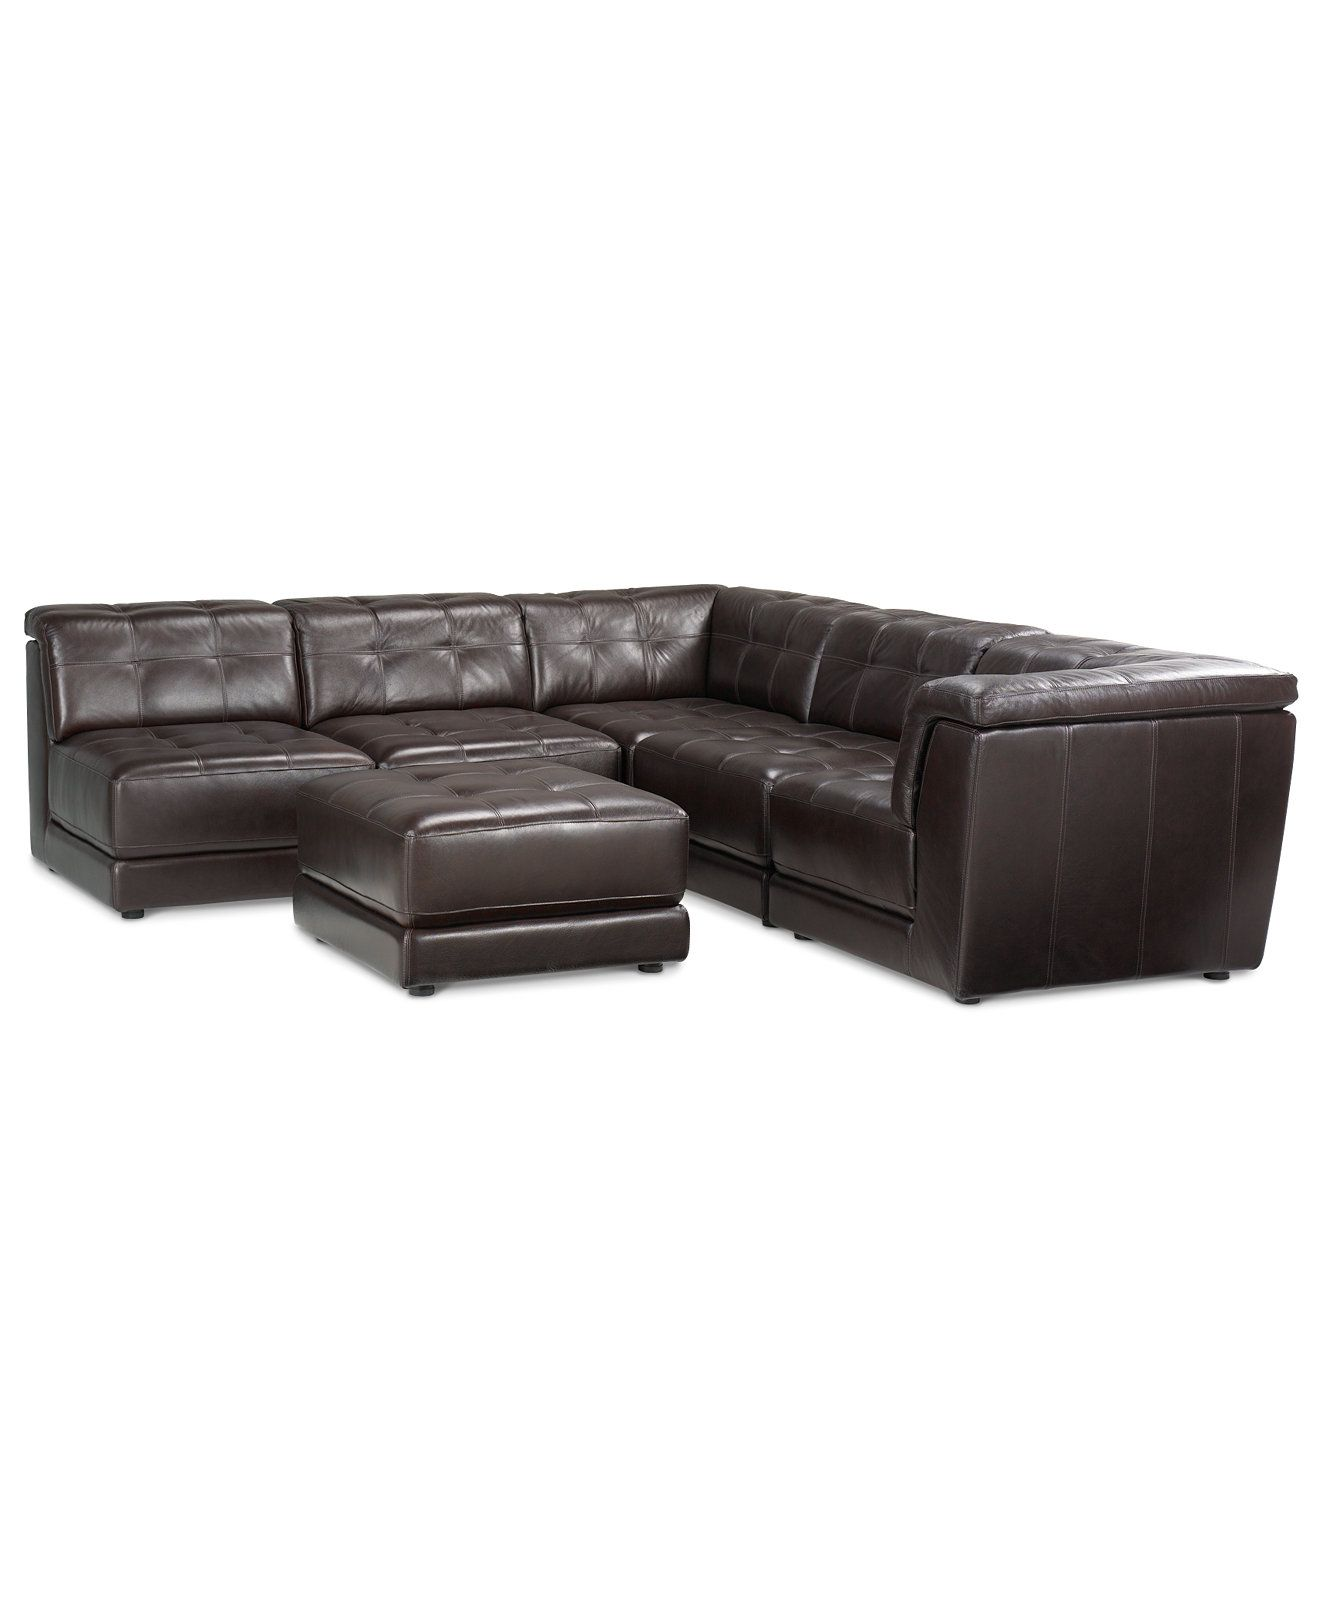 Stacey Leather 6 Piece Modular Sofa